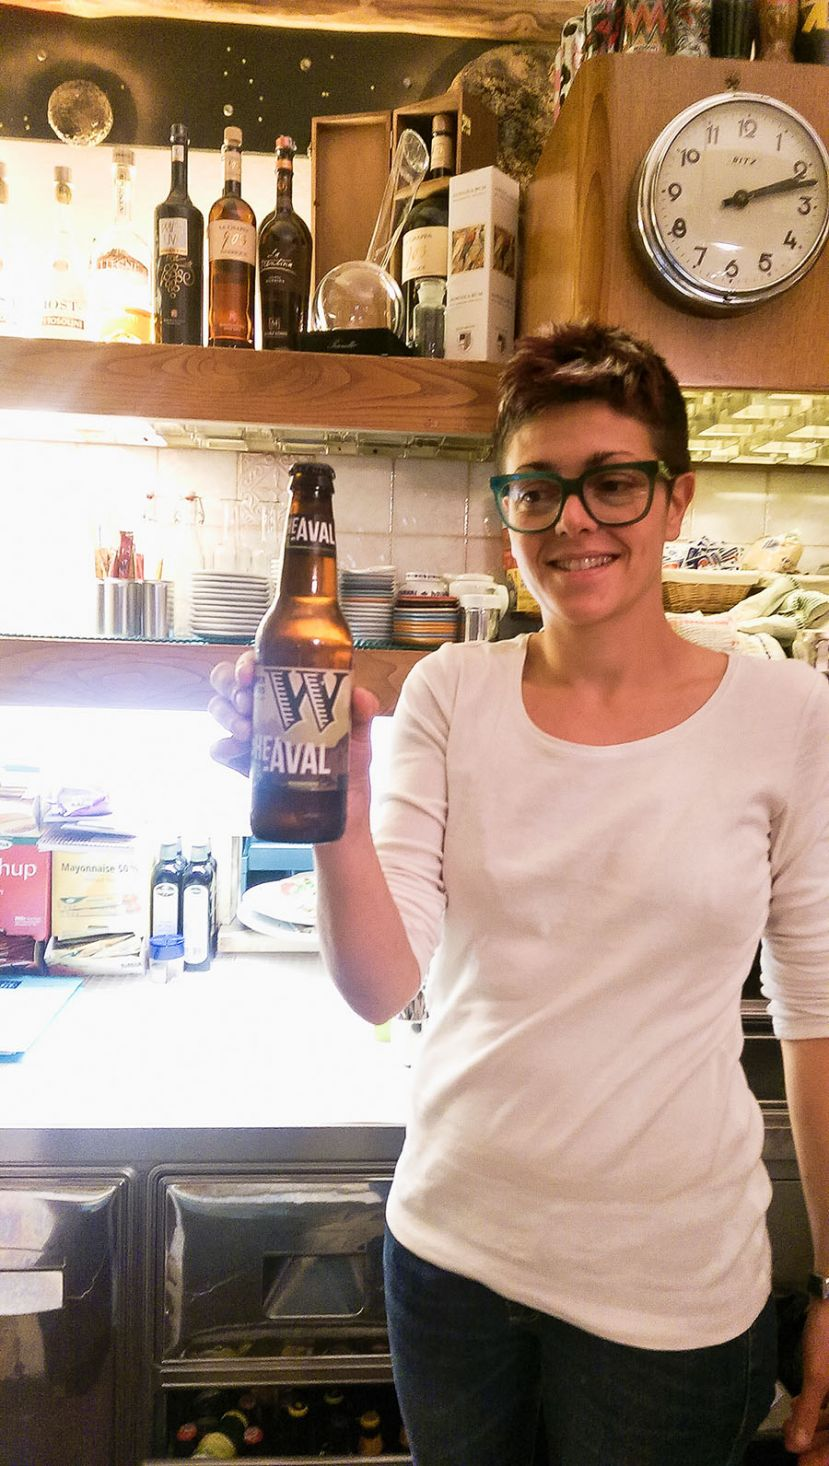 A server in Tuscany displays a bottle of Widmer Upheaval IPA.